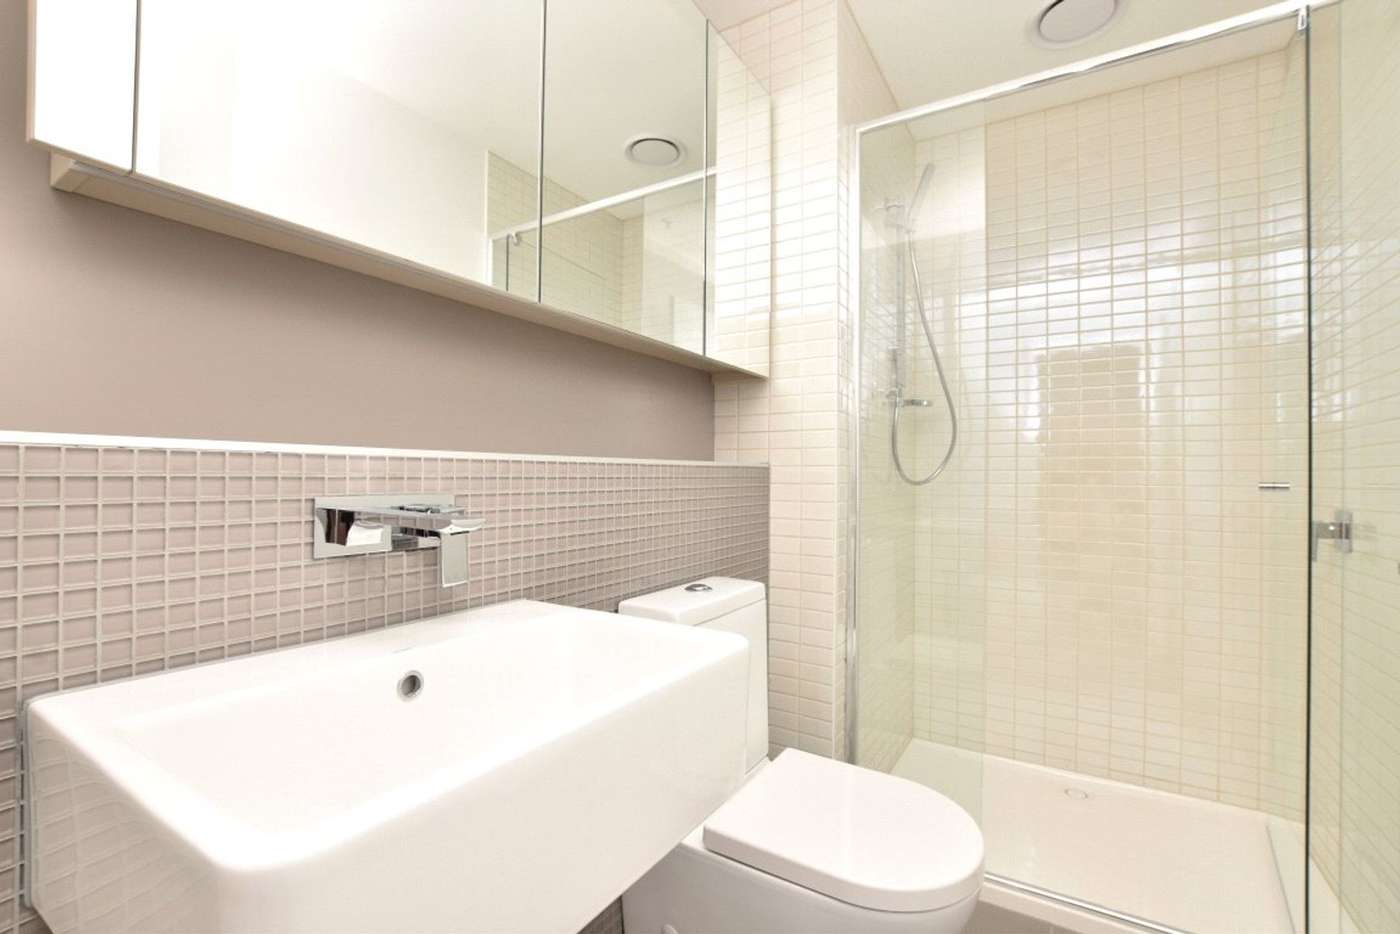 Fifth view of Homely apartment listing, 3307/38 Rose Lane, Melbourne VIC 3000